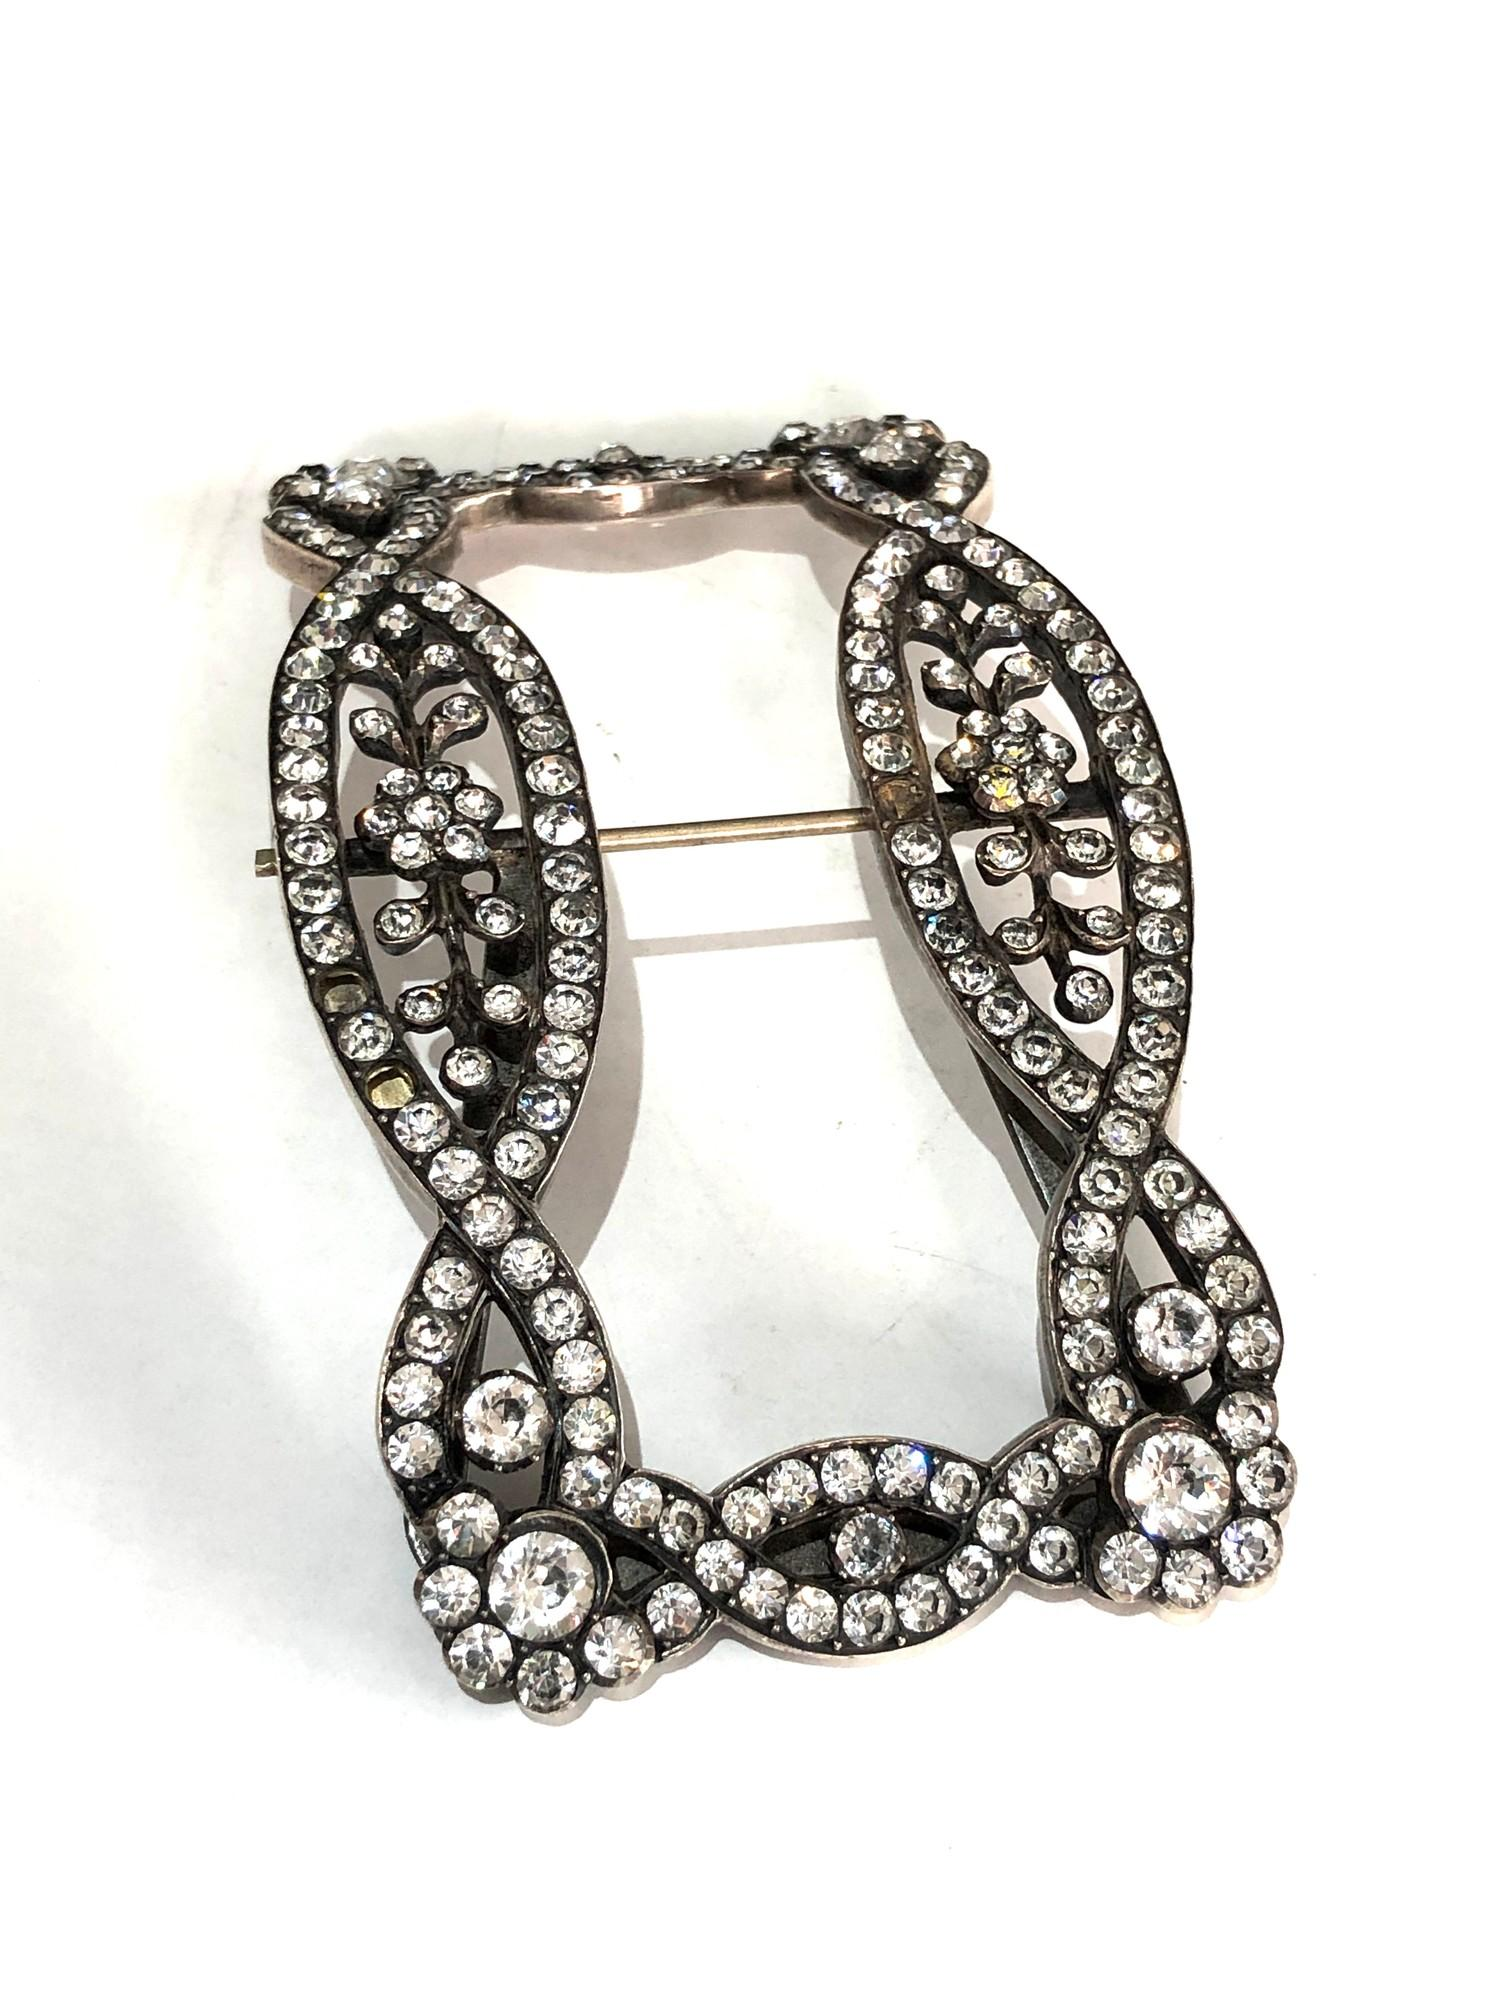 An early 19th century silver and paste buckle measures approx 10.5cm by 6.2cm missing 2 paste stones - Image 2 of 5